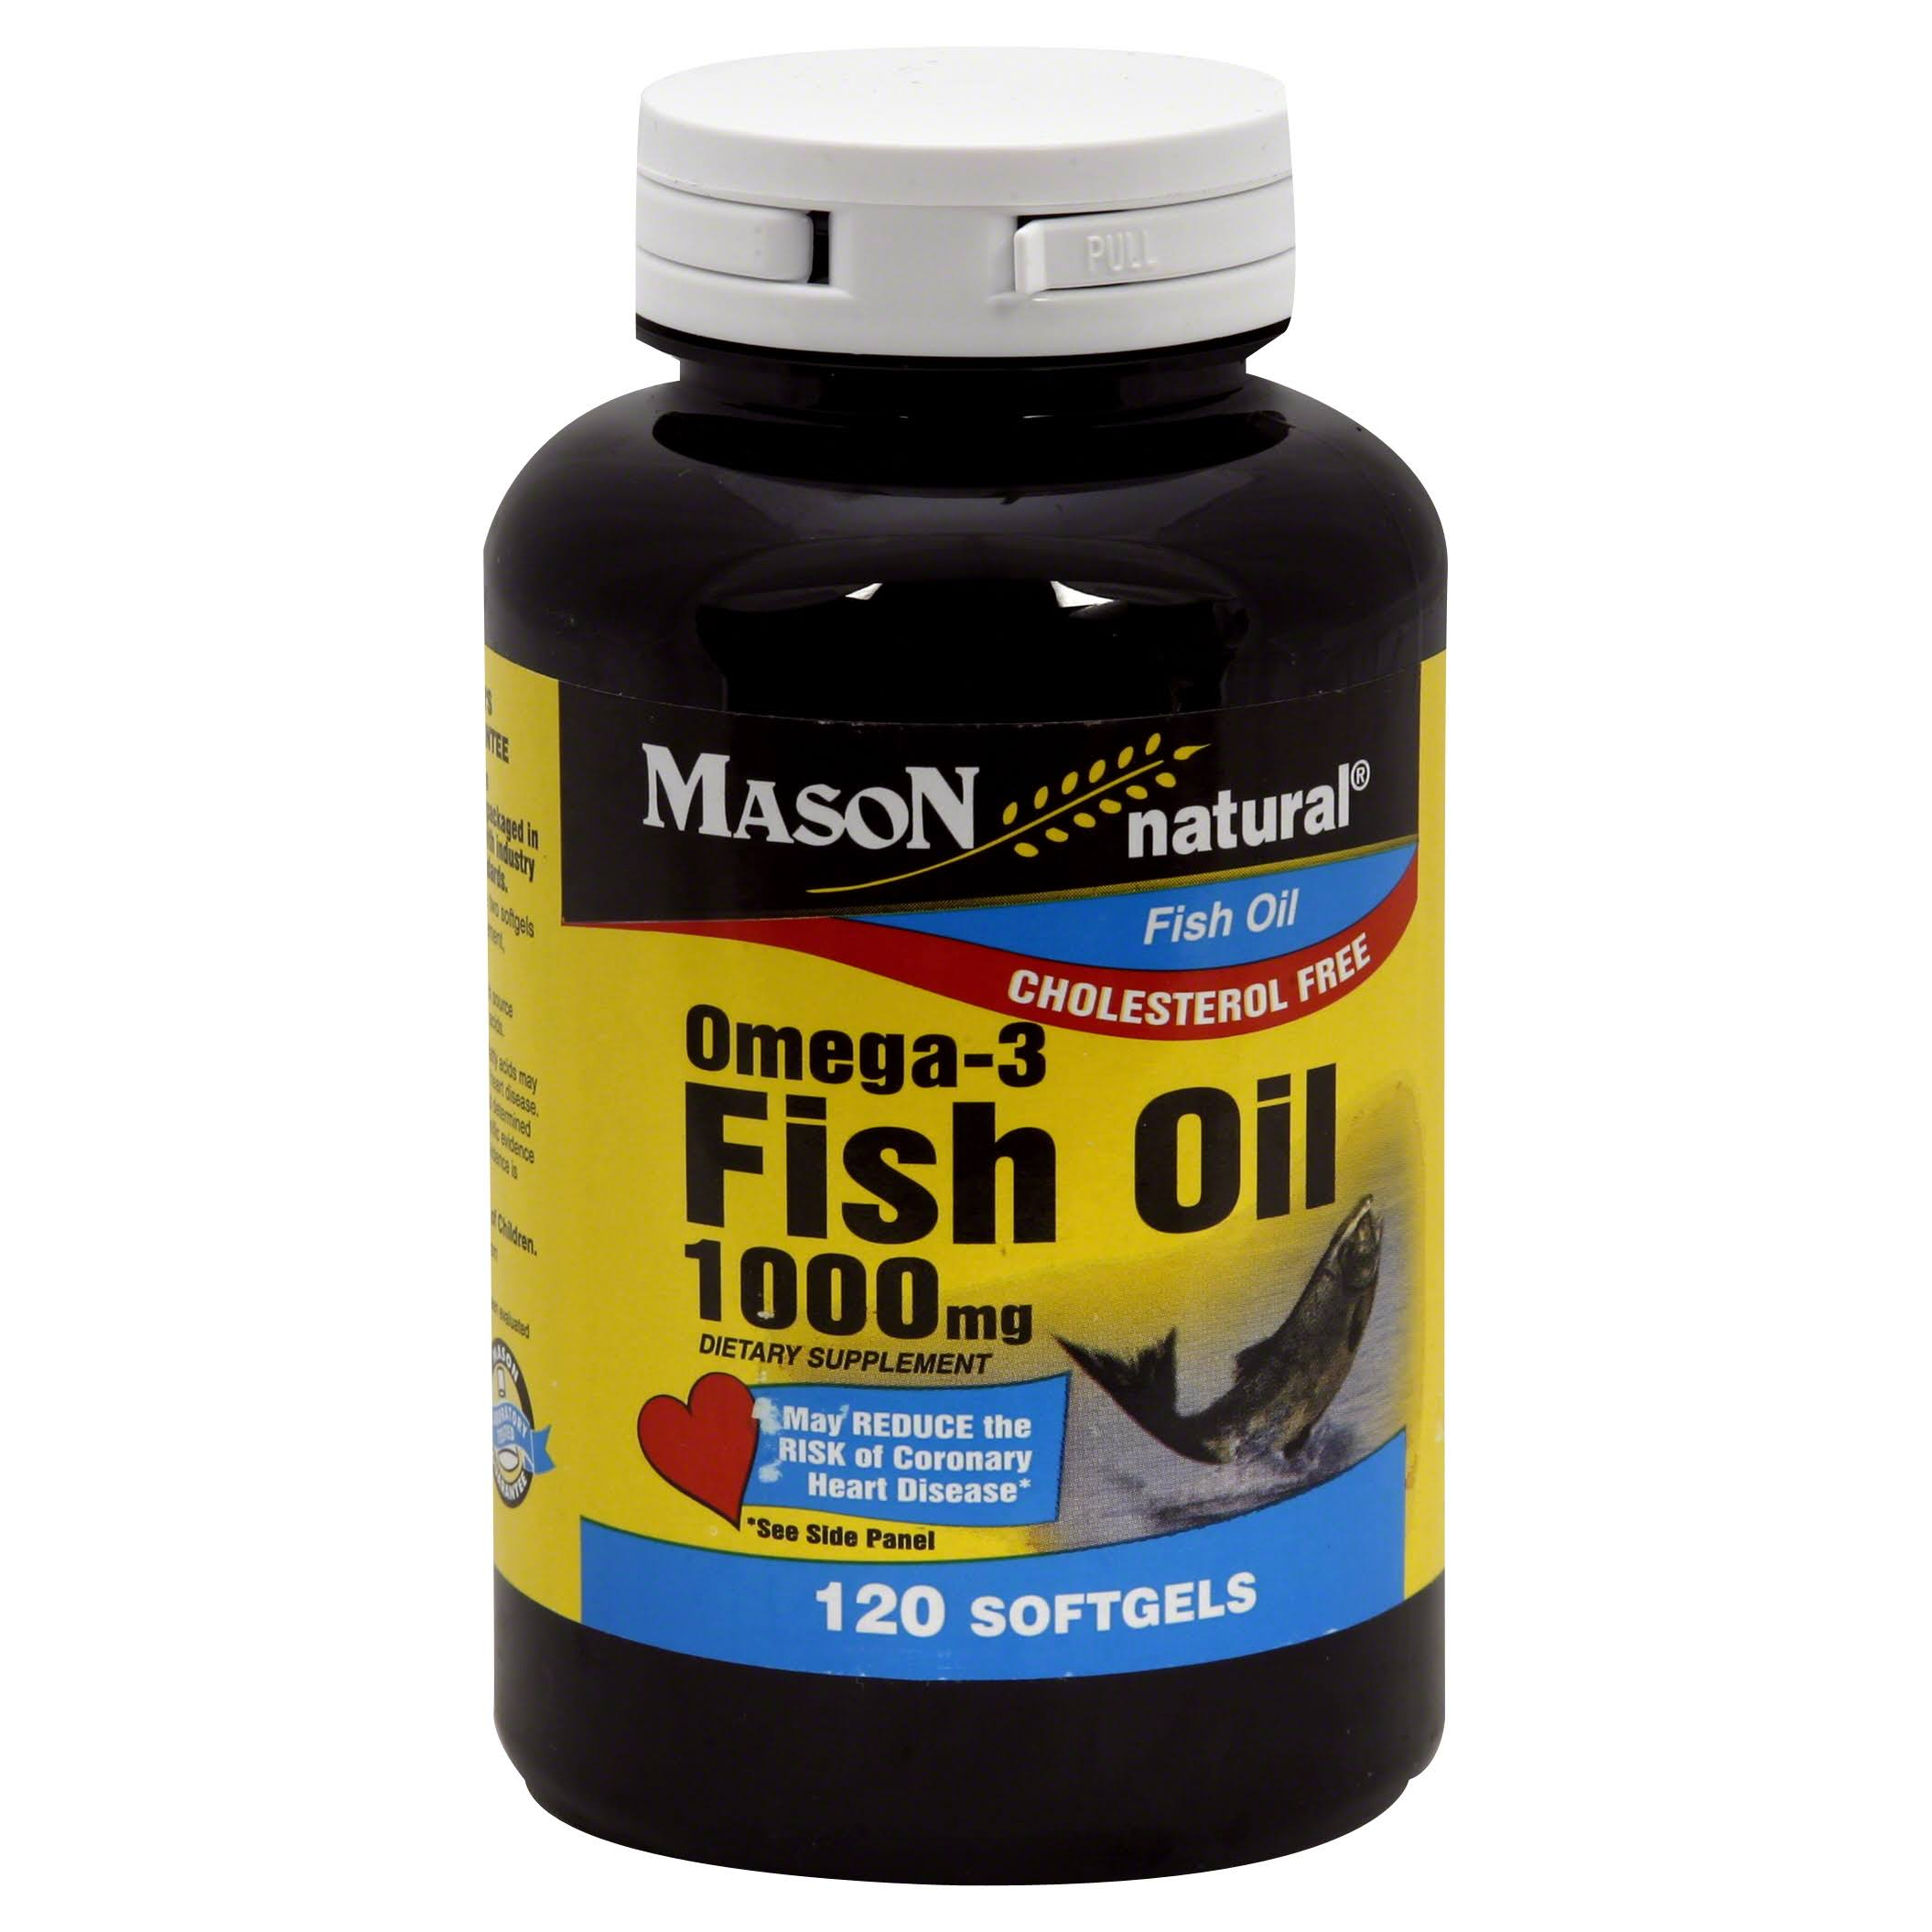 Mason Natural Omega-3 Fish Oil - 1000mg, 120ct